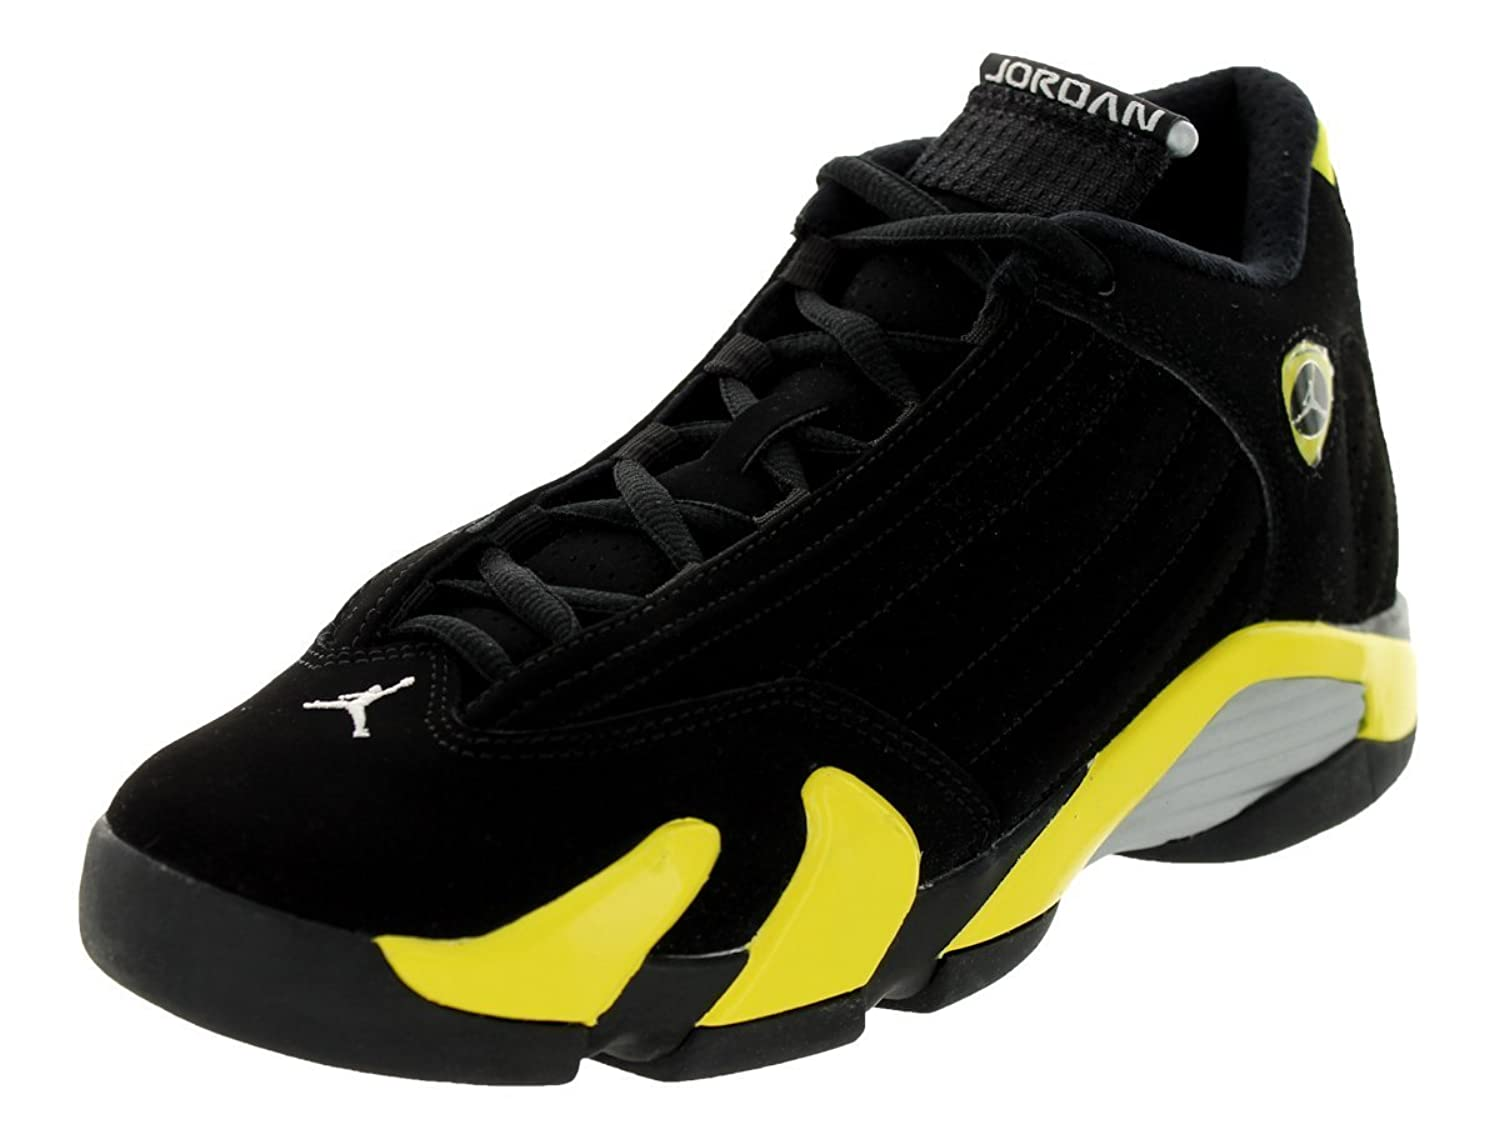 jordan kids air jordan retro 14 basketball shoe